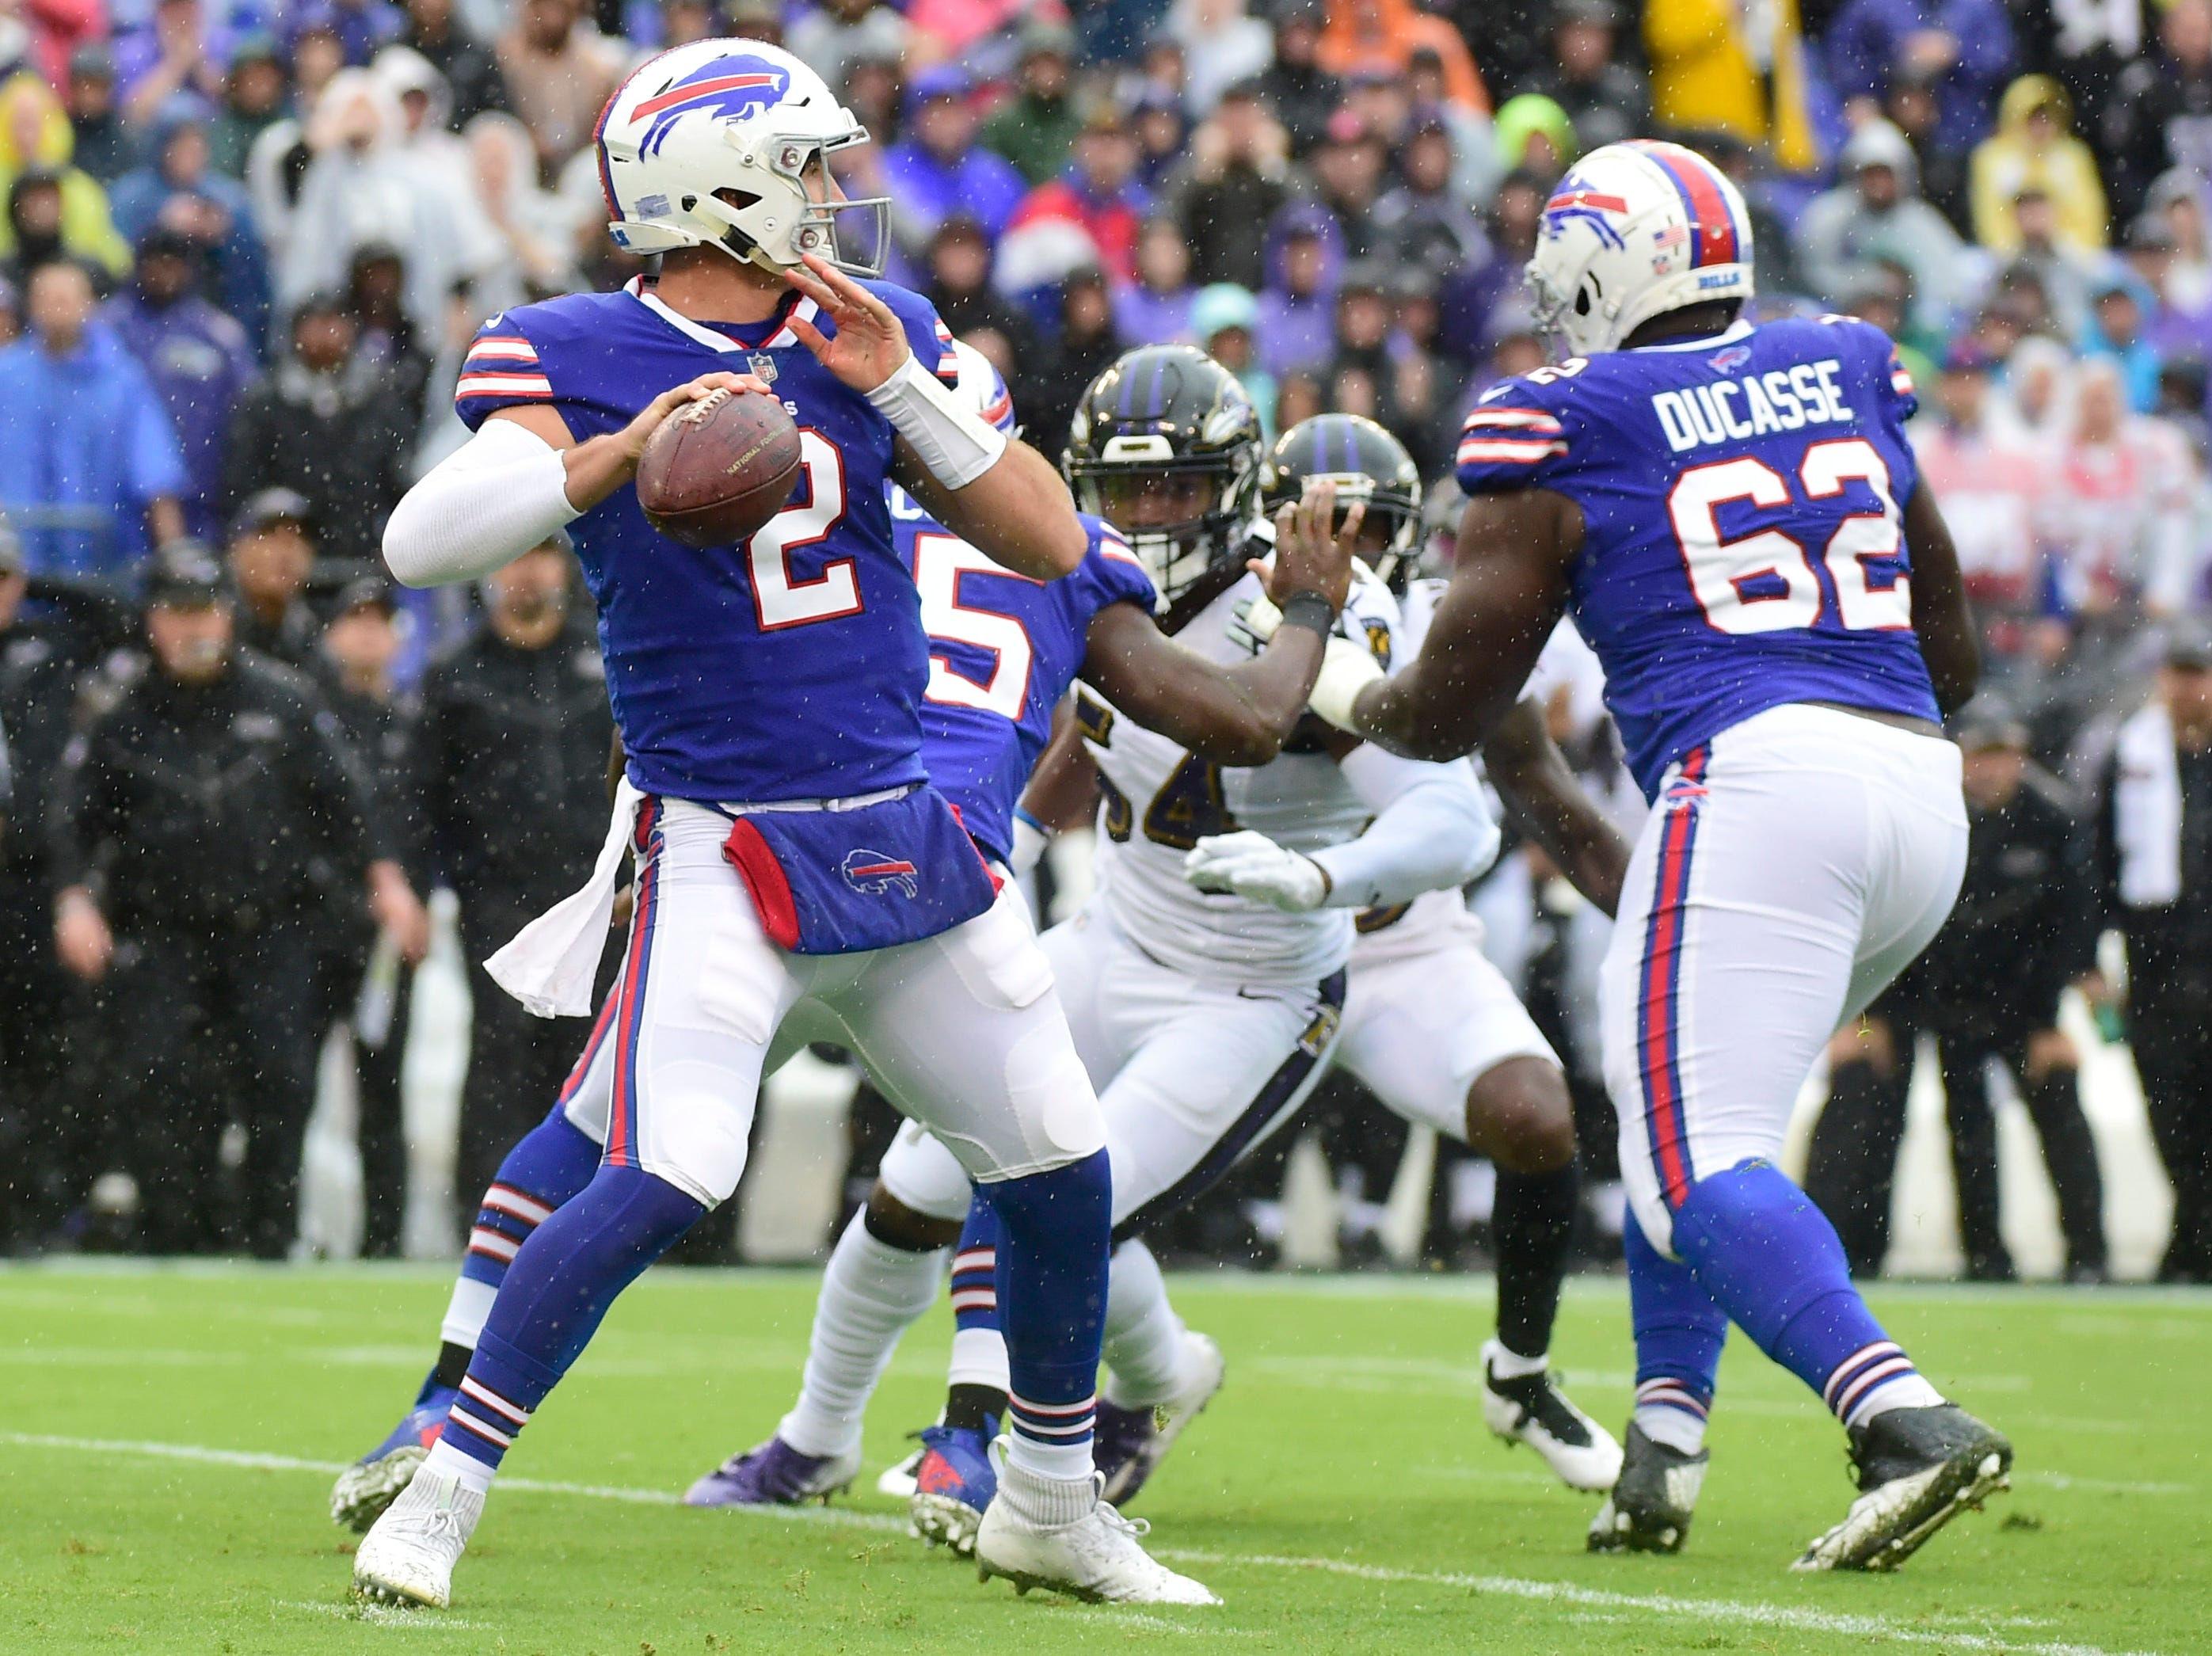 Buffalo Bills quarterback Nathan Peterman (2) drops back to pass during the first quarter against the Baltimore Ravens at M&T Bank Stadium.